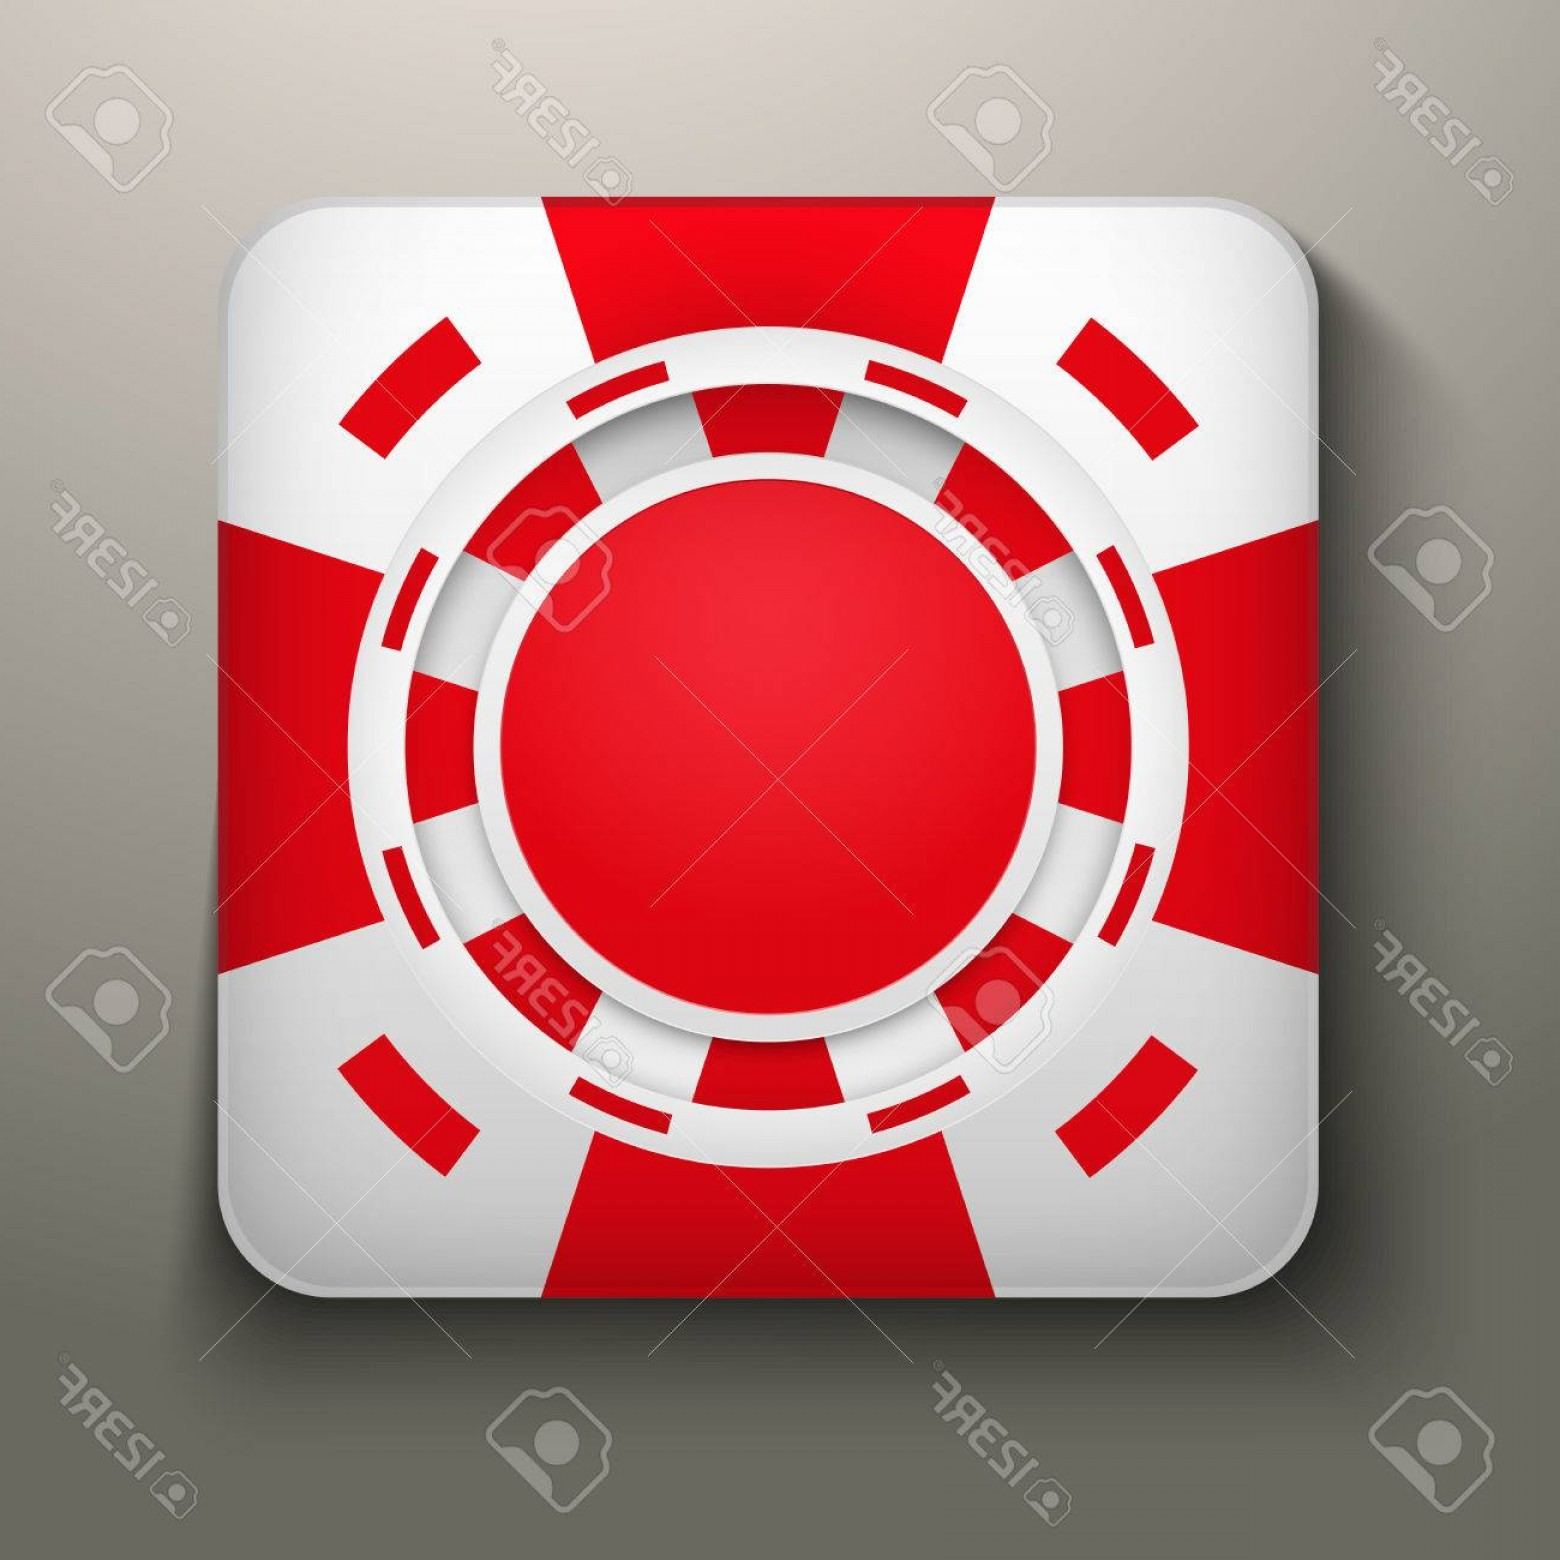 Editable Vector Poker Chips: Photosquare Icon Red Casino Chips Bright Symbols Of Gambling Vector Illustration Editable And Isolated